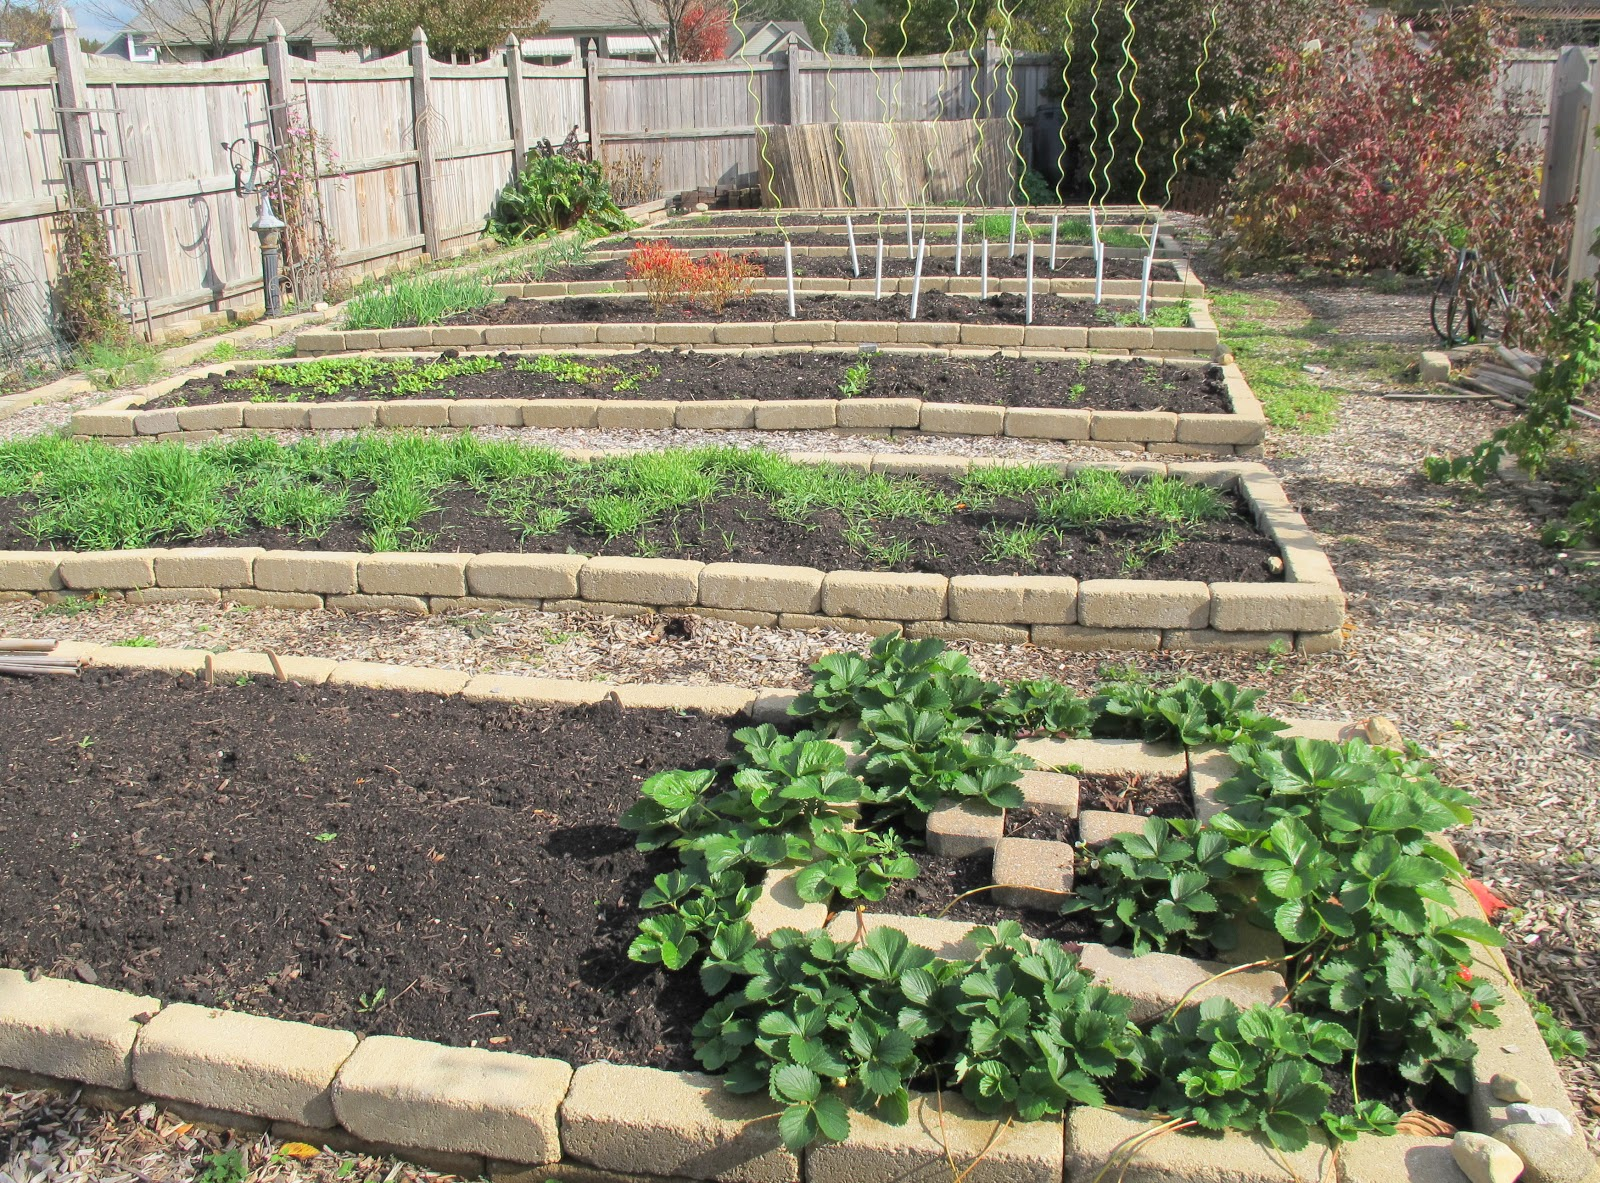 Vegetable garden quotes quotesgram for Compact vegetable garden ideas